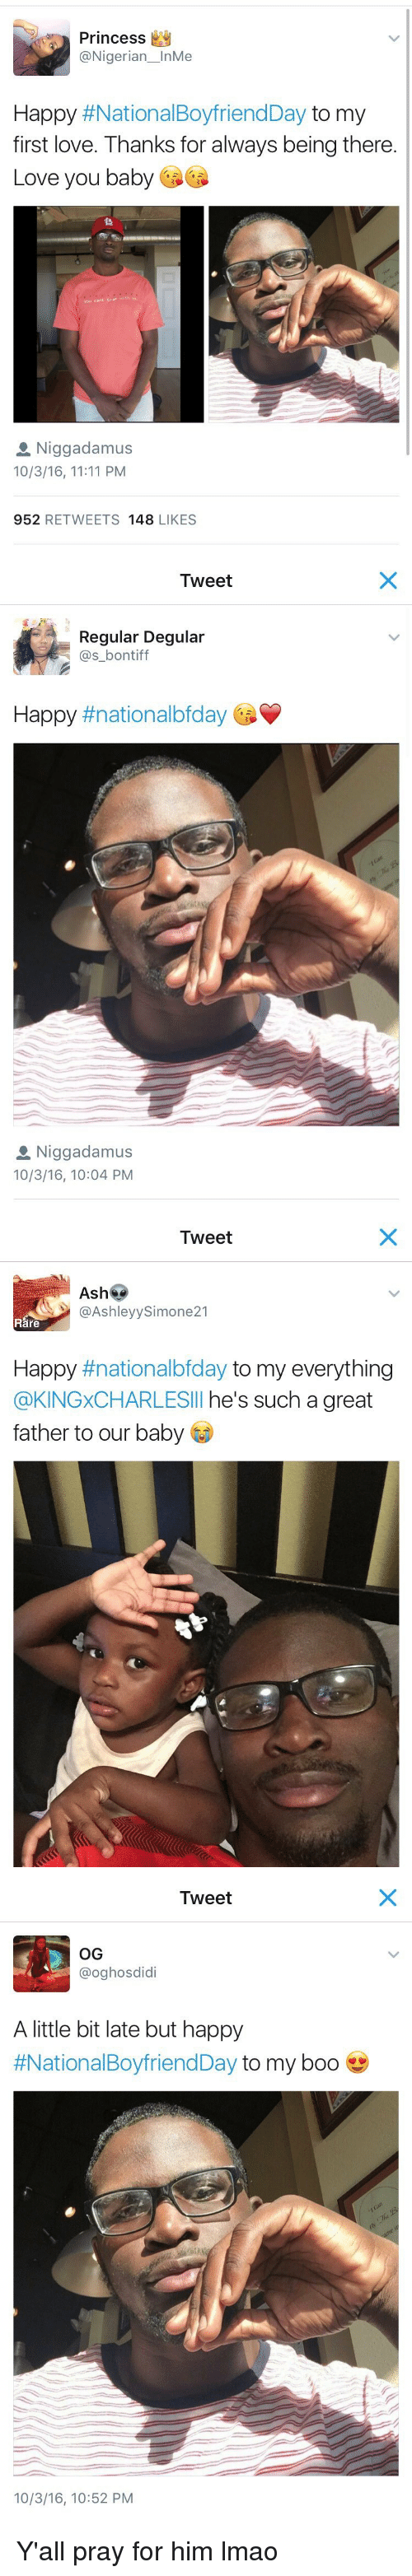 Baby, It's Cold Outside: Princess  @Nigerian  InMe  Happy  #National BoyfriendDay  to my  first love. Thanks for always being there.  Love you baby  vou cast tran Mith  a Niggadamus  10/3/16, 11:11 PM  952  RETWEETS 148  LIKES   Tweet  Regular Degular  (as bontiff  Happy  ttnationalbfday  a Niggadamus  10/3/16, 10:04 PM   Tweet  Ash  @Ashley Simone21  Rare  Happy  #nationalbfday to my everything  @KINGxCHARLESIll he's such a great  father to our baby   Tweet  OG  @oghos didi  A little bit late but happy  #National BoyfriendDay to my boo  10/3/16, 10:52 PM Y'all pray for him lmao